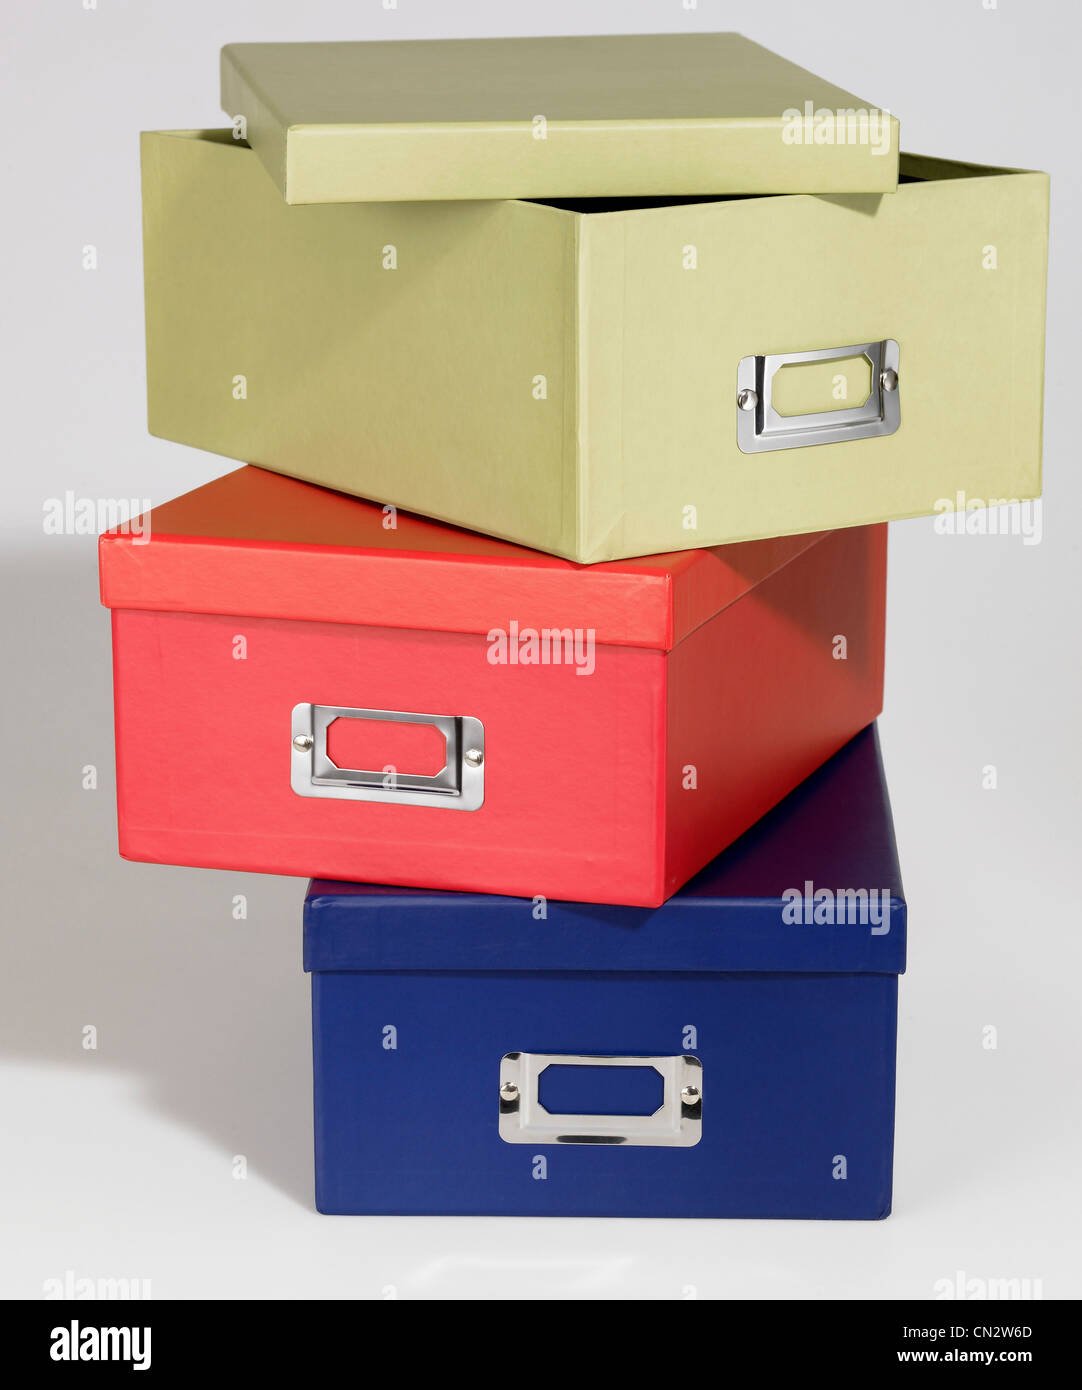 Colorful Stacked Storage Boxes - Stock Image